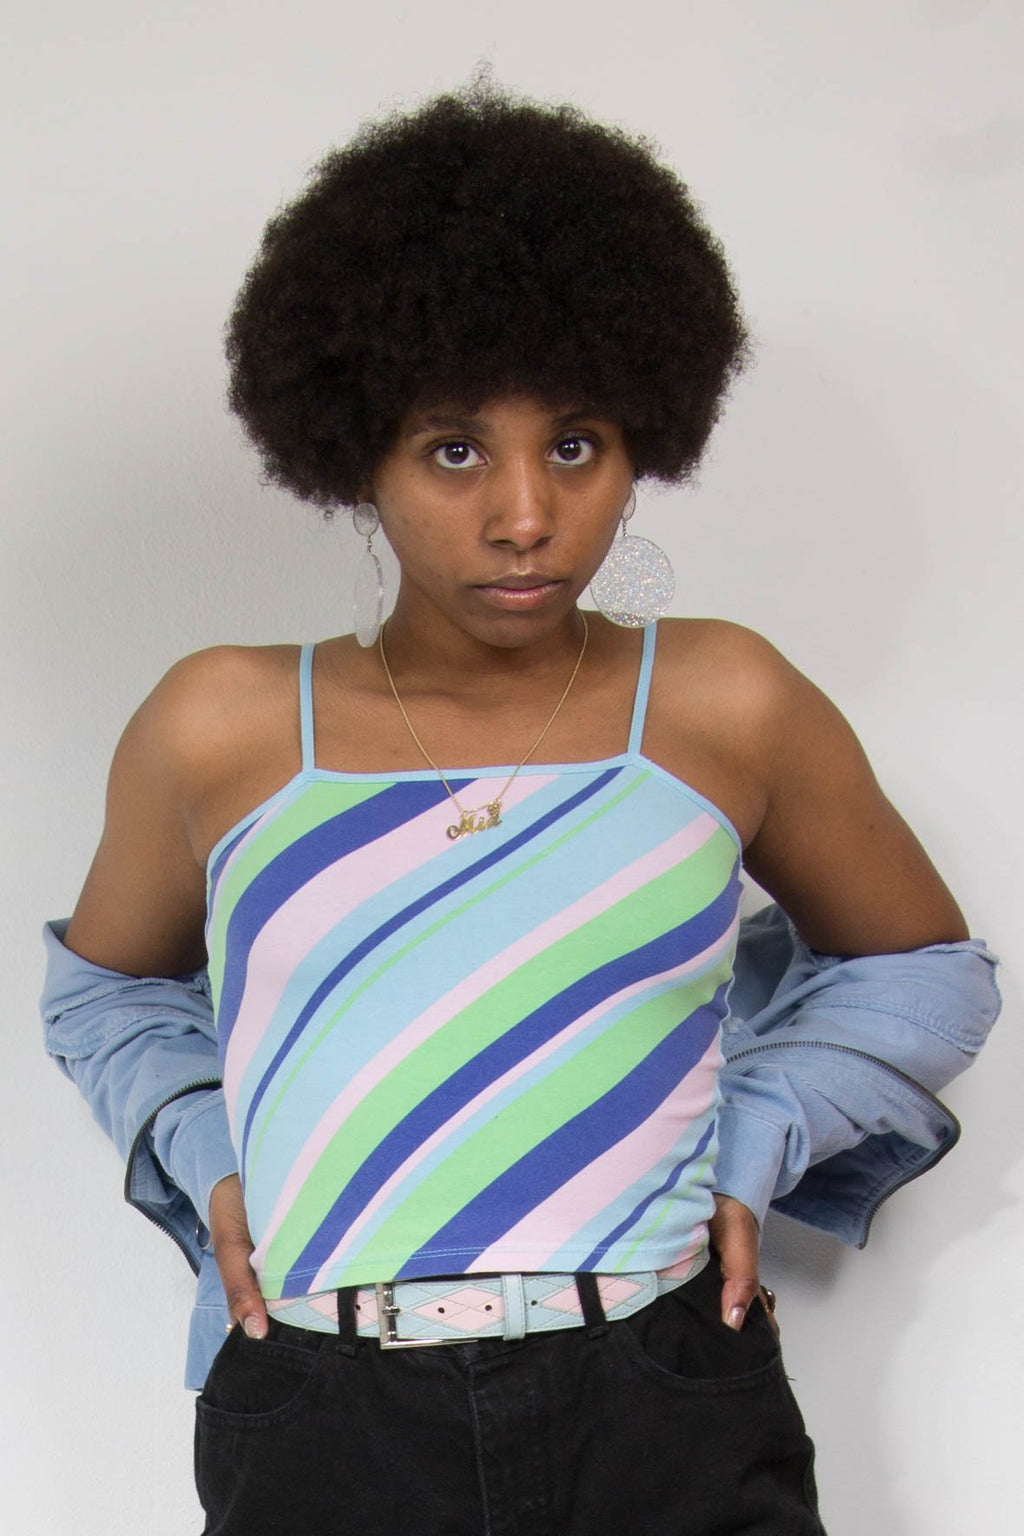 00's Candy Stripe Spaghetti Strap Top